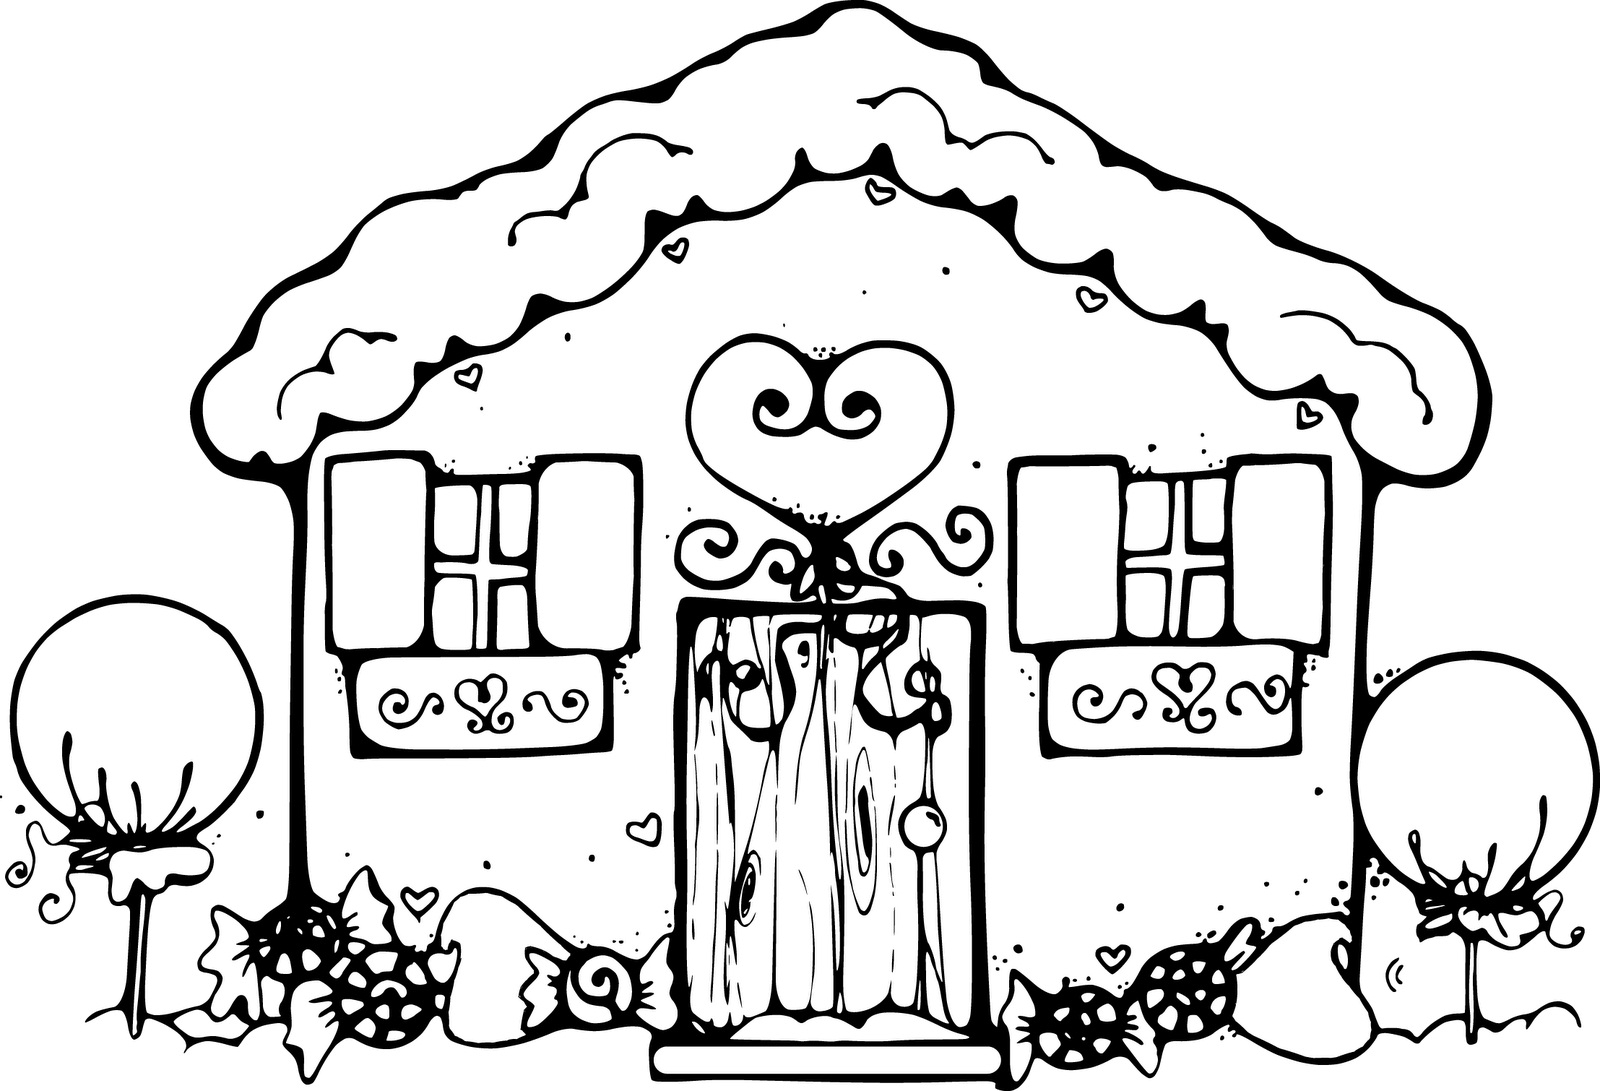 1600x1091 House Drawings For Kids To Color How To Draw And Color The House